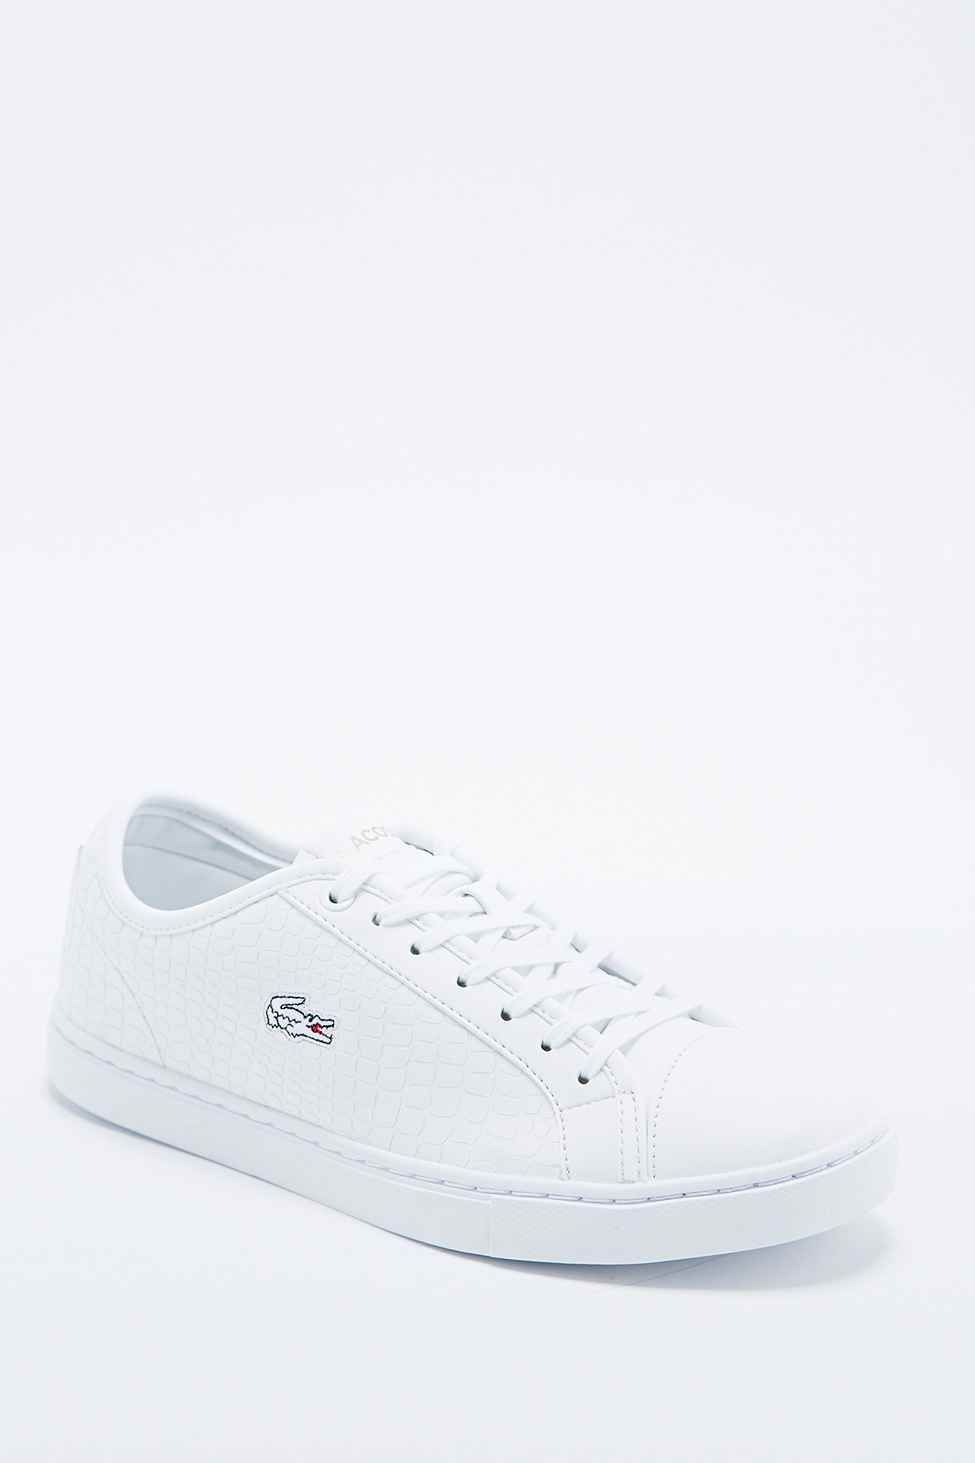 fb769b064f4c5 Lacoste Showcourt Leather Trainers in White